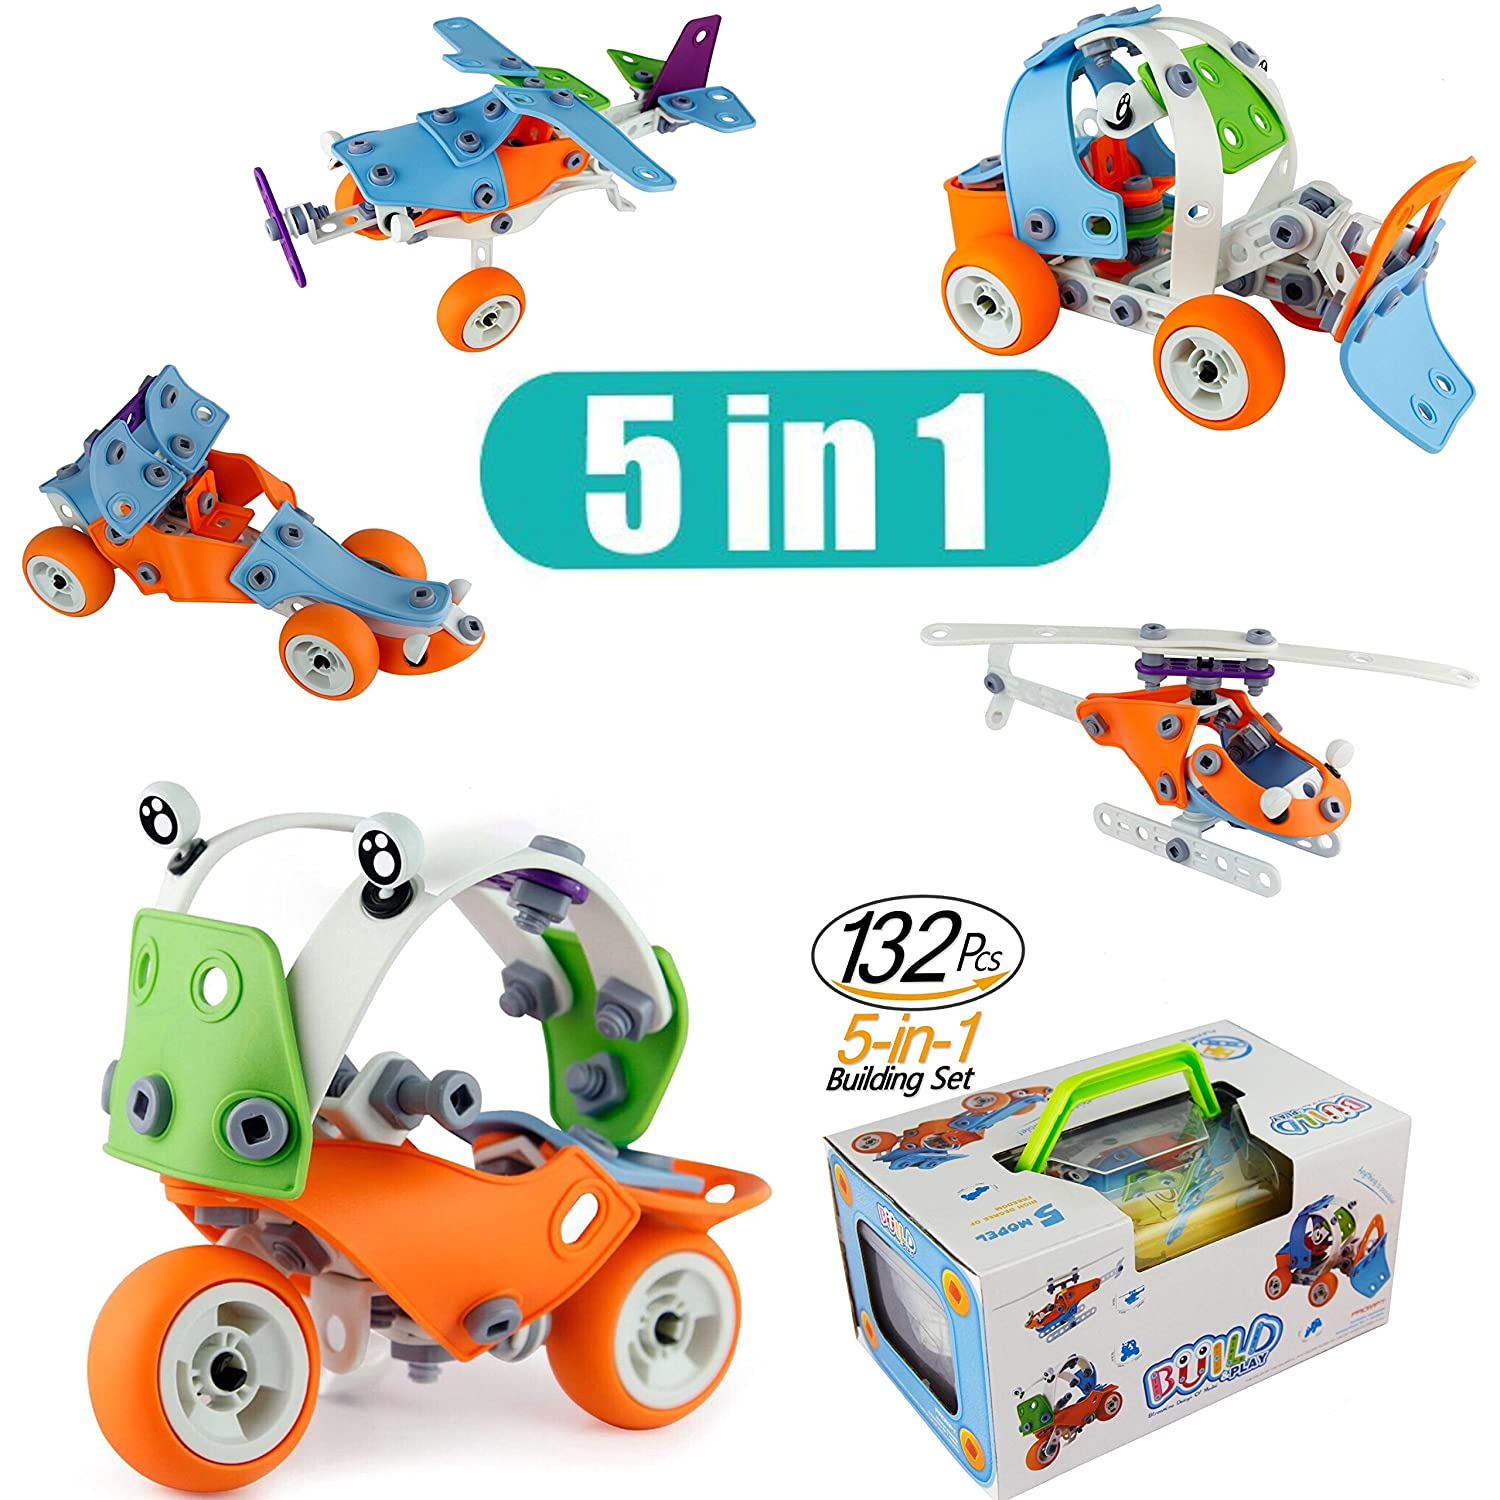 Model Building Blocks Toys Set Cars Airplane DIY Kits to build 5-in-1 STEM Learning Toys Creative Stacking Build Model Set 132PCS Education Construction Engineering Gifts For Kids Boys and Girls Toys Review